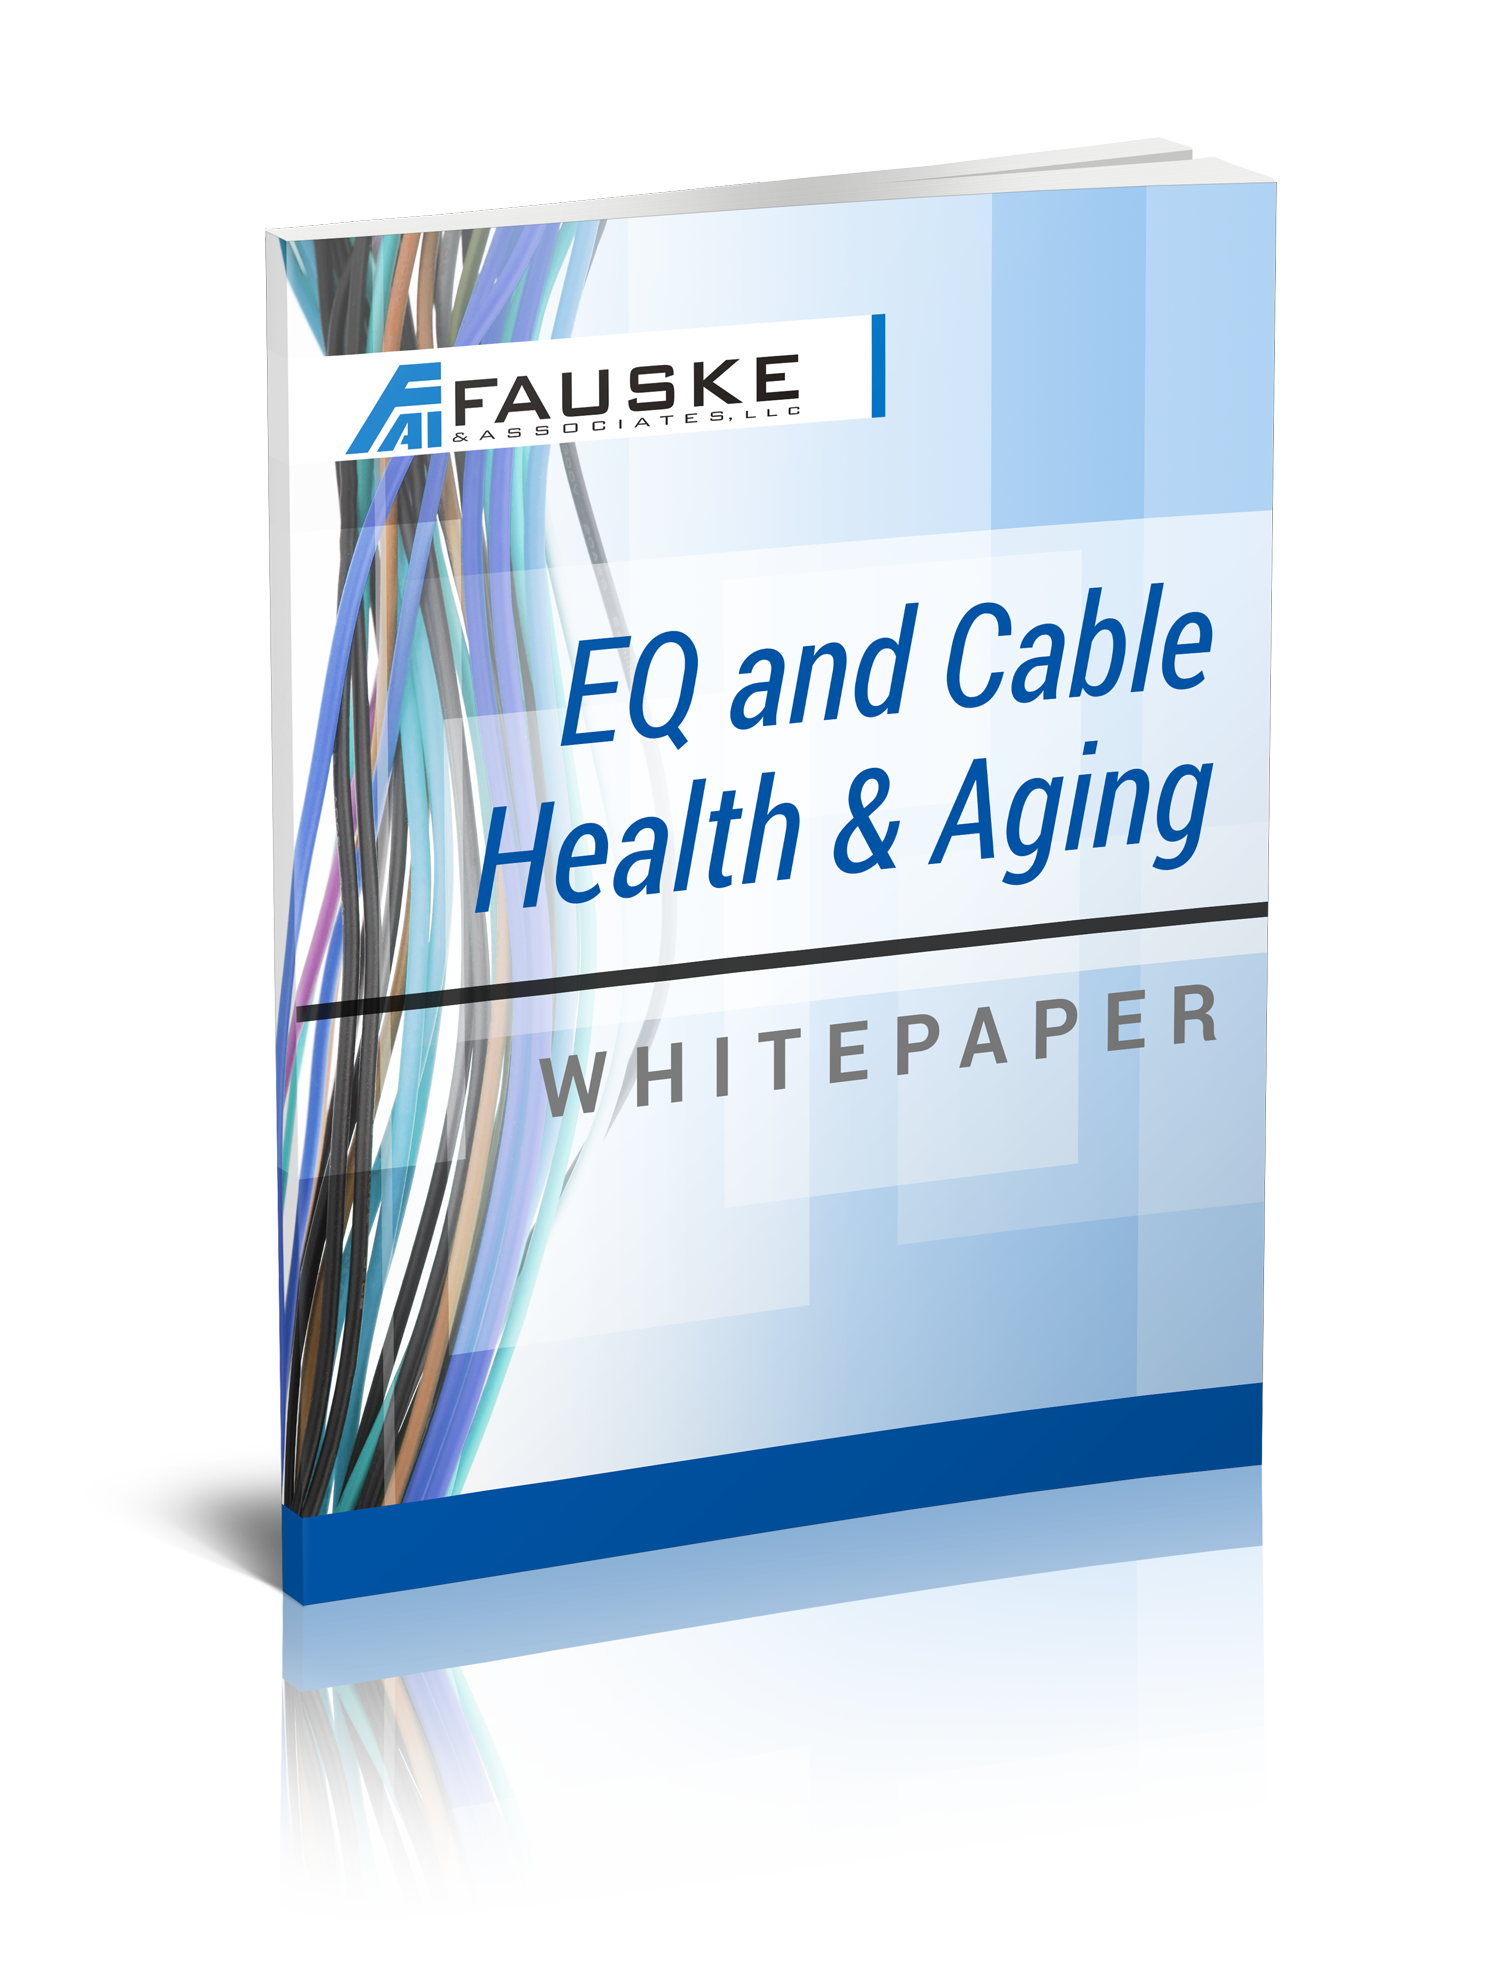 fauske-eb-cover-whitepaper-cable-aging